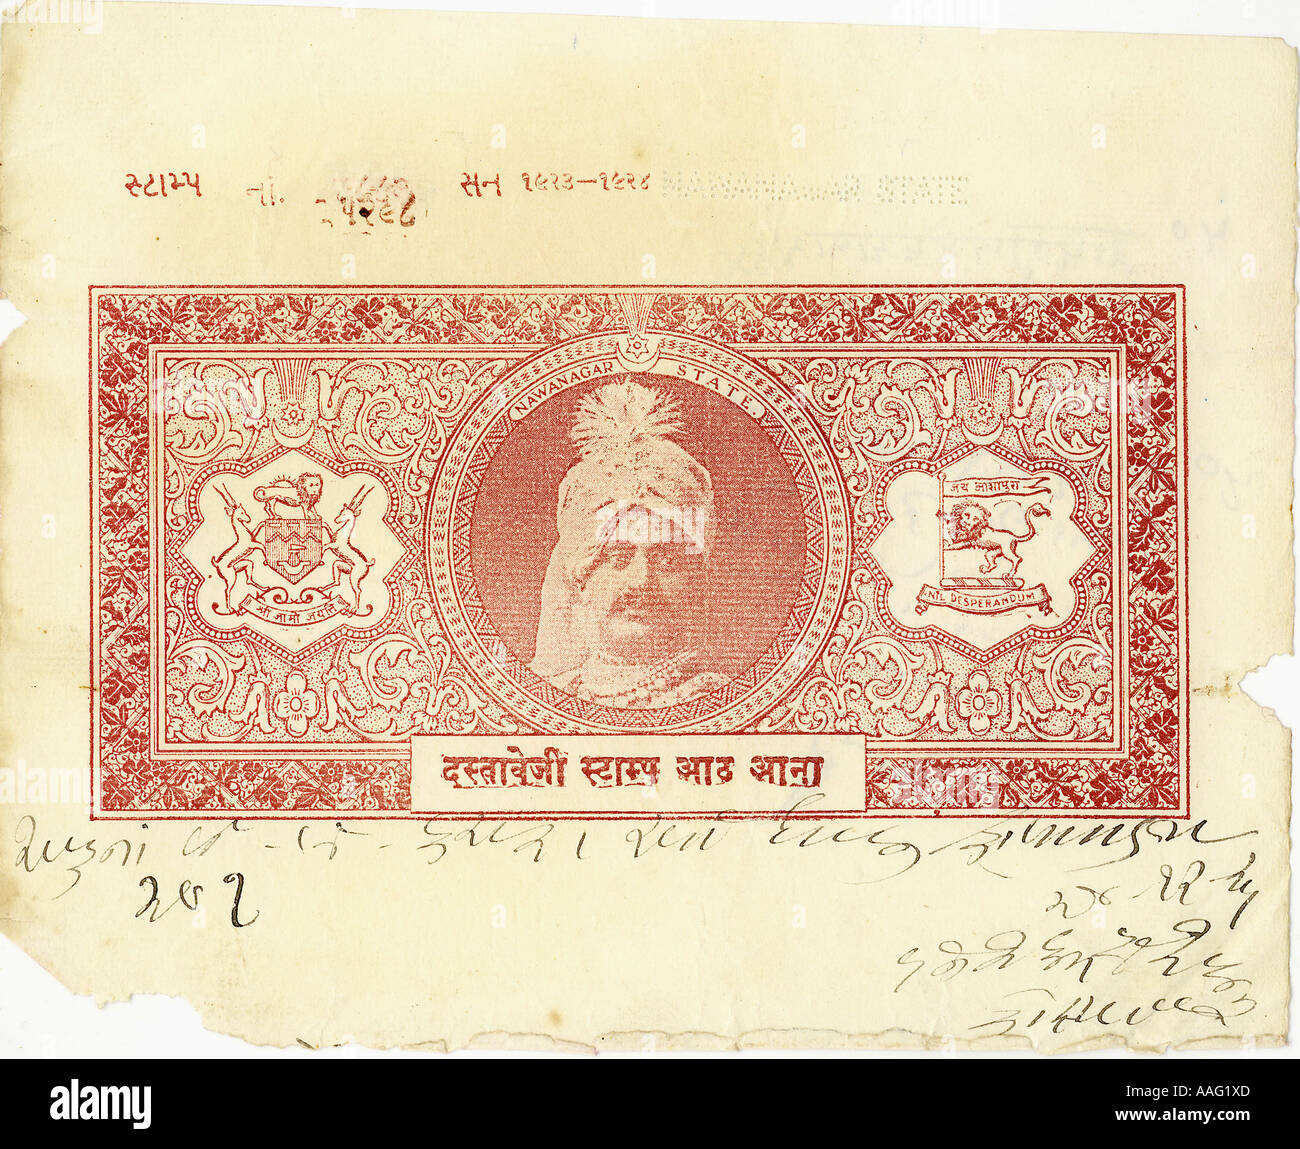 DDR78447 Stamp Paper old antique vintage 24 december 1925 Nawanagar or Jamnagar Saurashtra Gujarat India - Stock Image